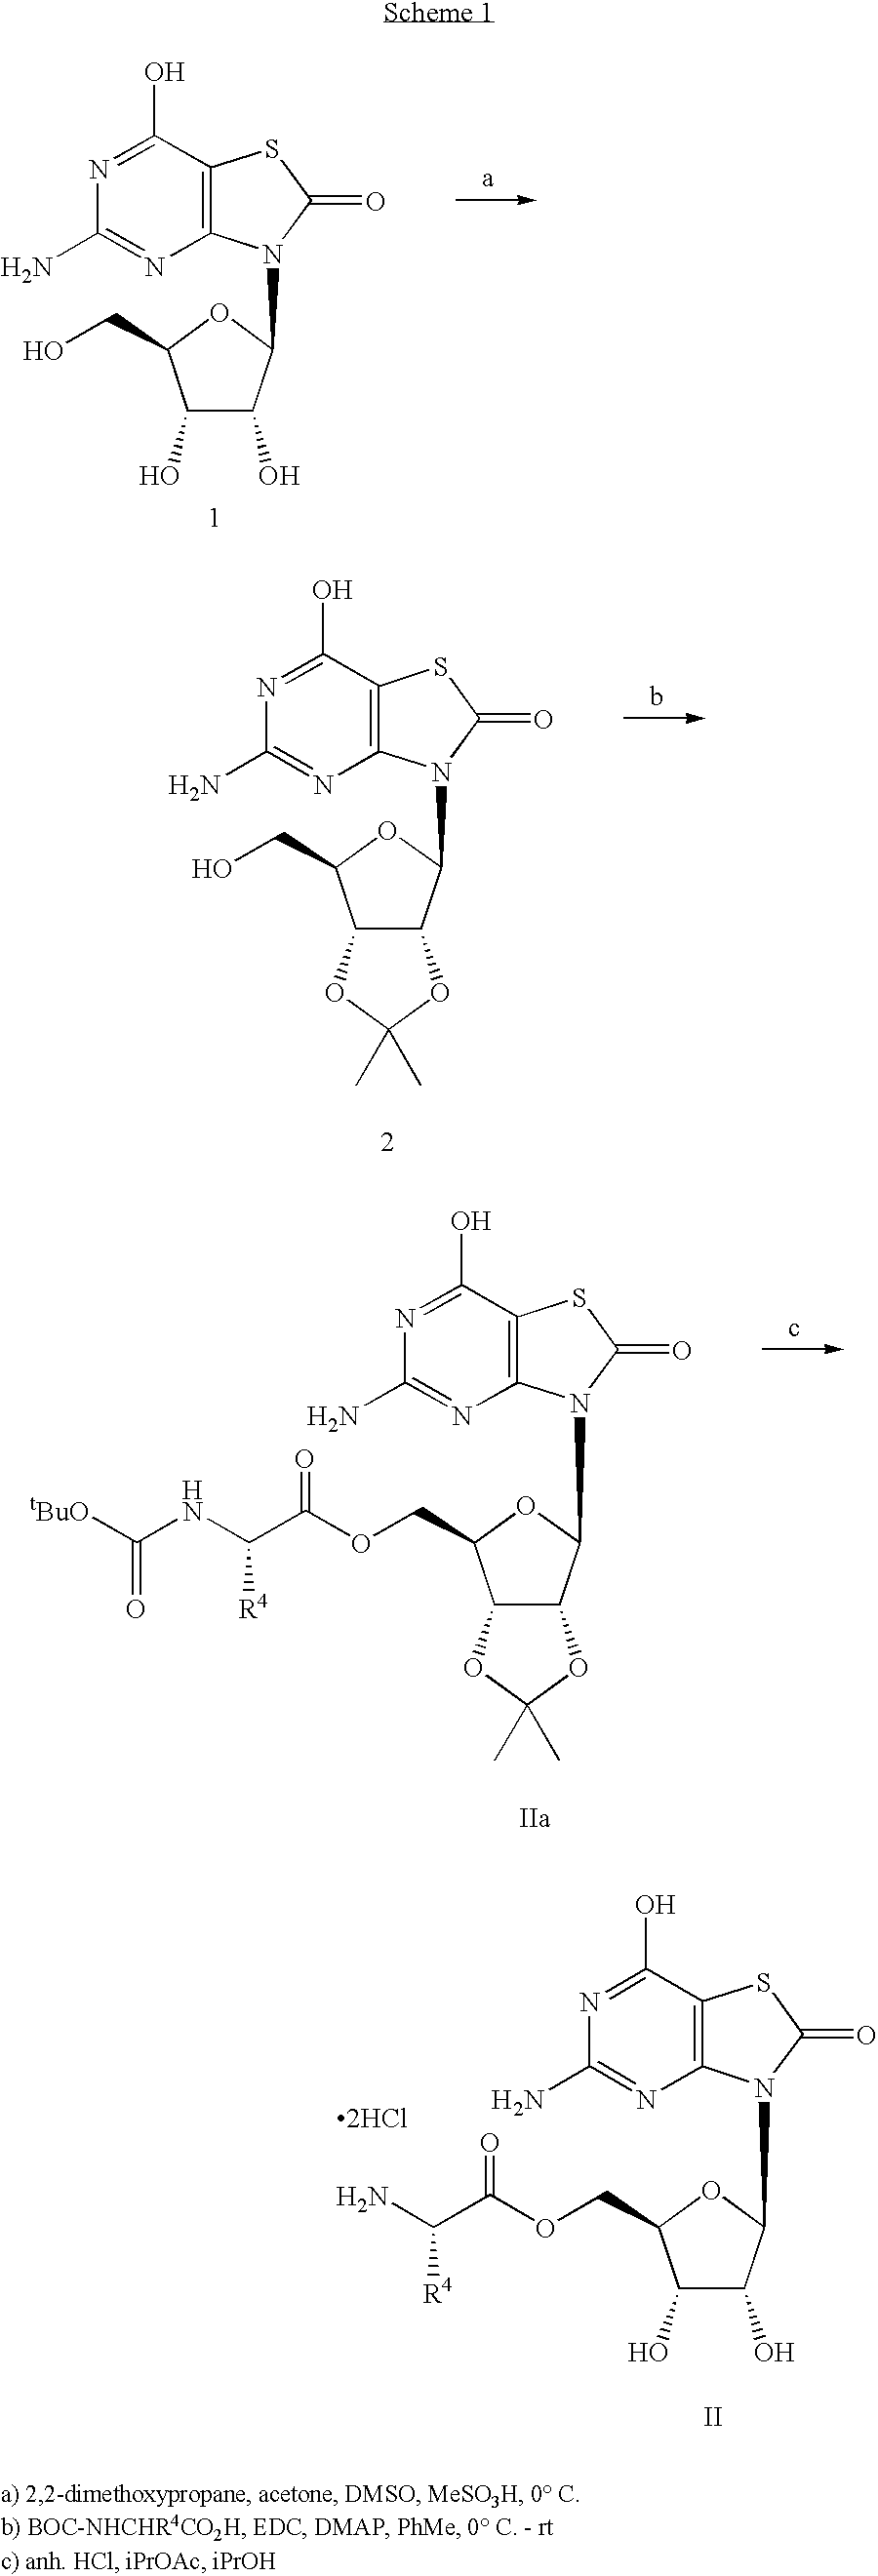 tbutyl esters of amino acids and Amino acid esters refer to those derivatives of amino acids in which the carboxylic acid group is converted to an ester amino acid esters are employed as intermediates in organic synthesis and find application in a wide-range of areas such as medicinal chemistry, peptide synthesis, asymmetric synthesis, and polymer chemistryamino acid esters are versatile chiral auxiliary groups that .